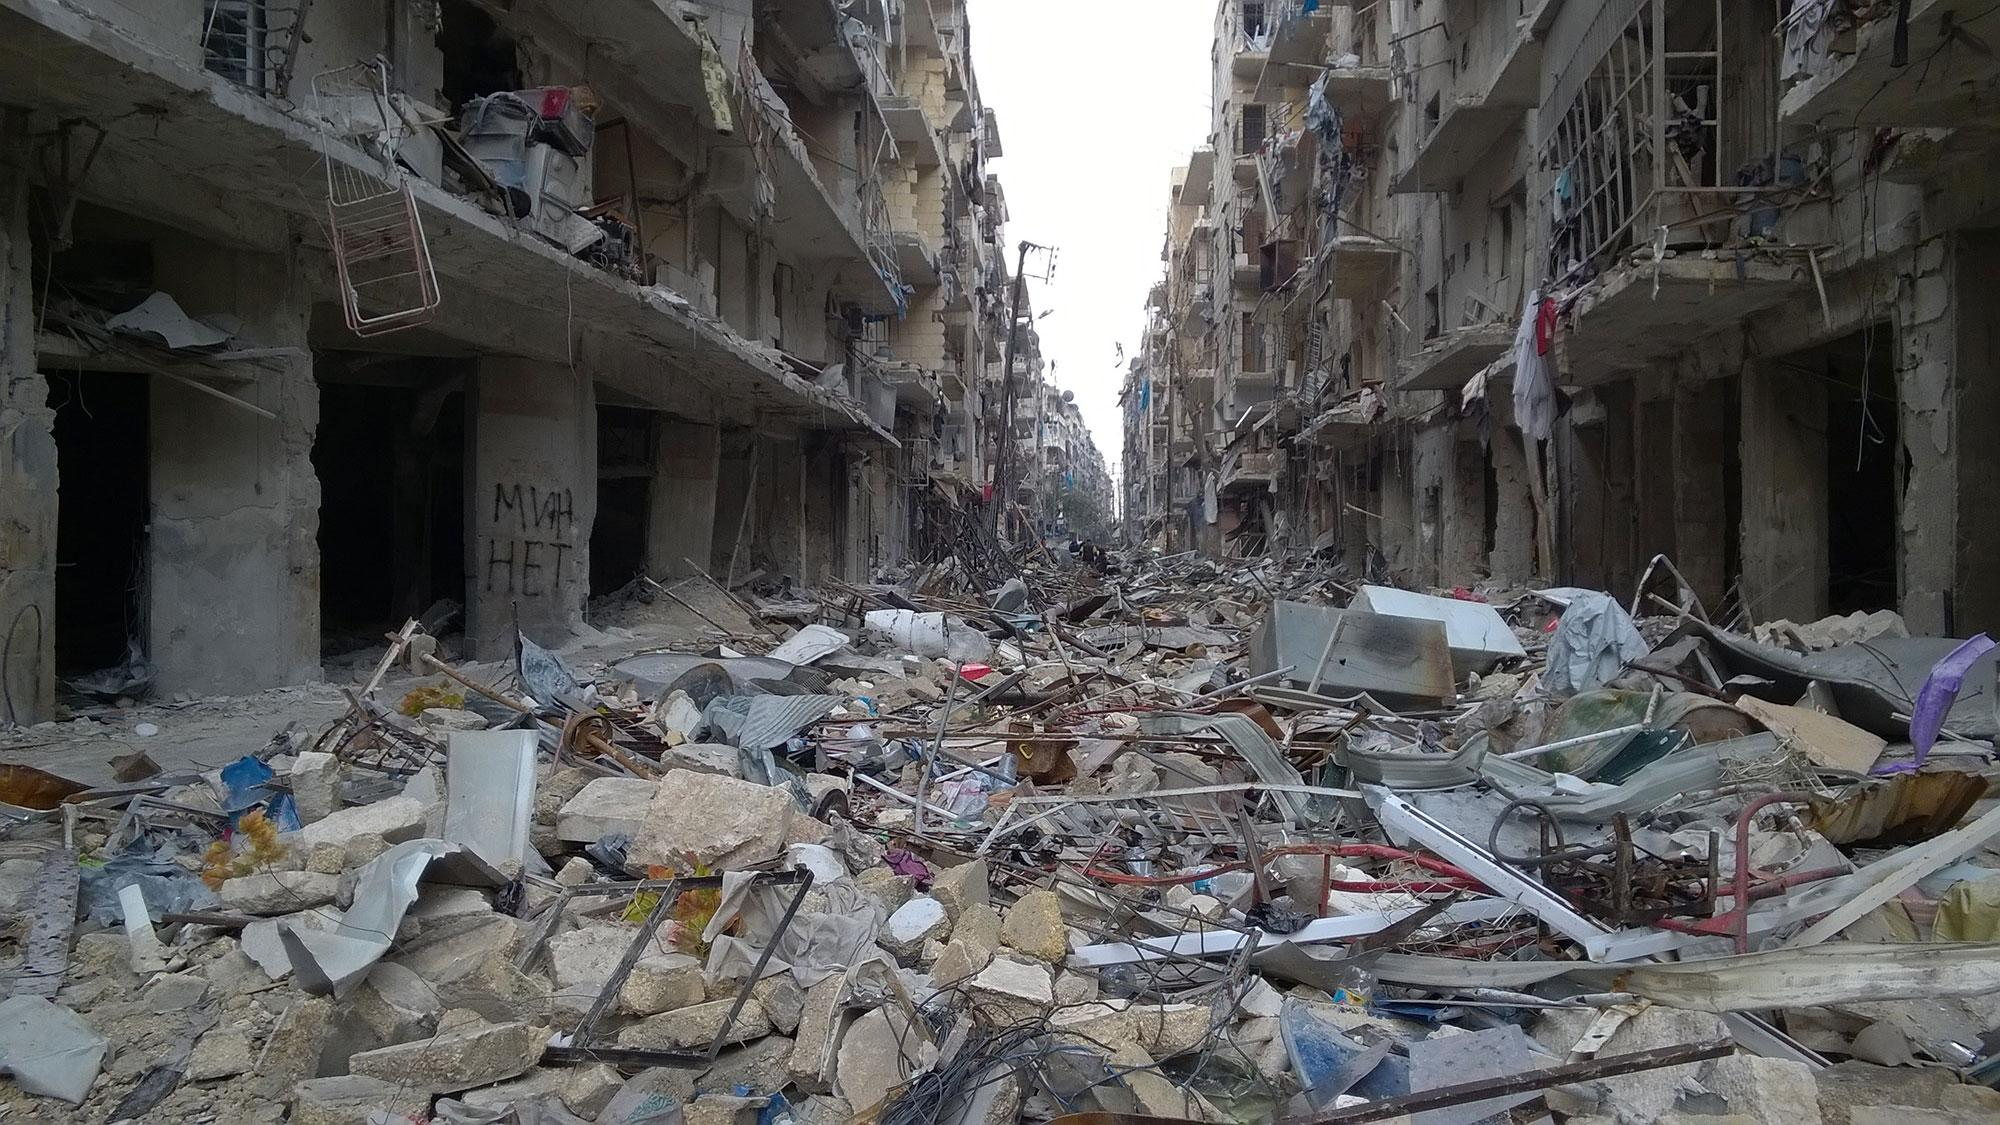 <p>the neighborhood of Karm al-Miasar in the eastern part of Aleppo is seen after Syrian government forces retook the entire embattled city on Dec. 23, 2016. Russia's Defense Minister Sergei Shoigu said that the evacuation of rebel fighters from the Syrian city of Aleppo was completed. (Photo: Abdullayev Timur/TASS via ZUMA Press) </p>